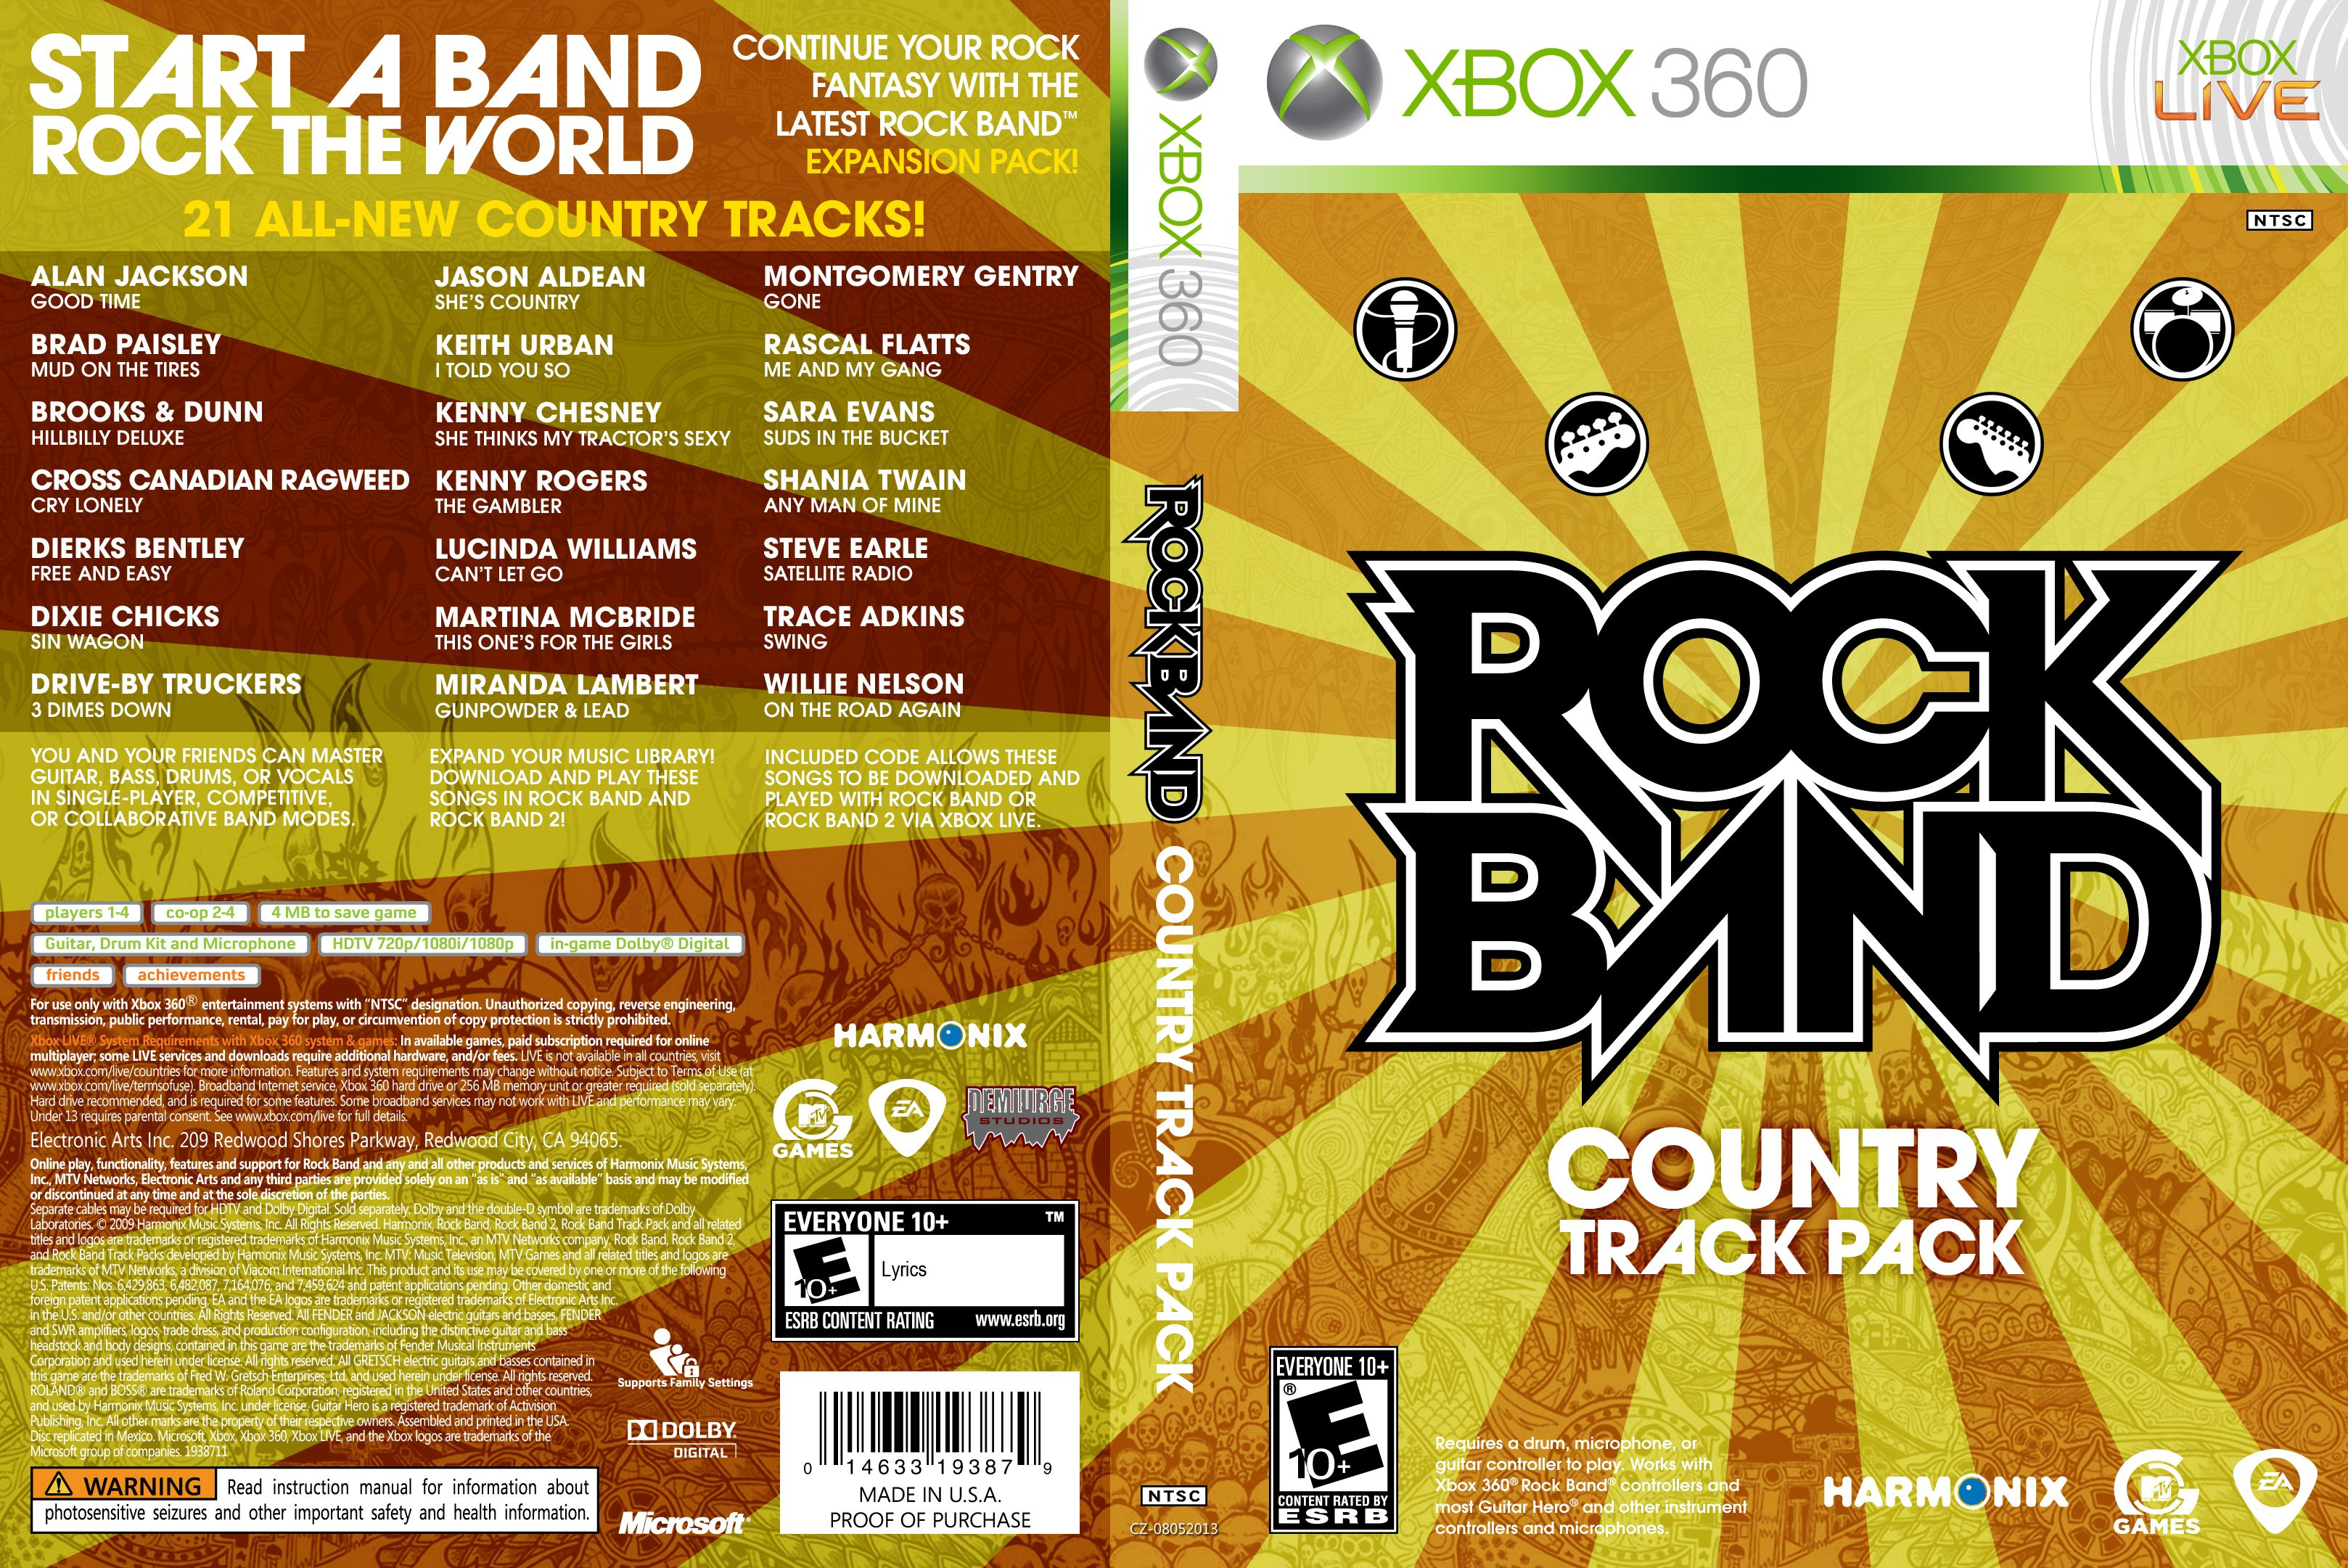 Capa Rock Band Country Track Pack Xbox 360